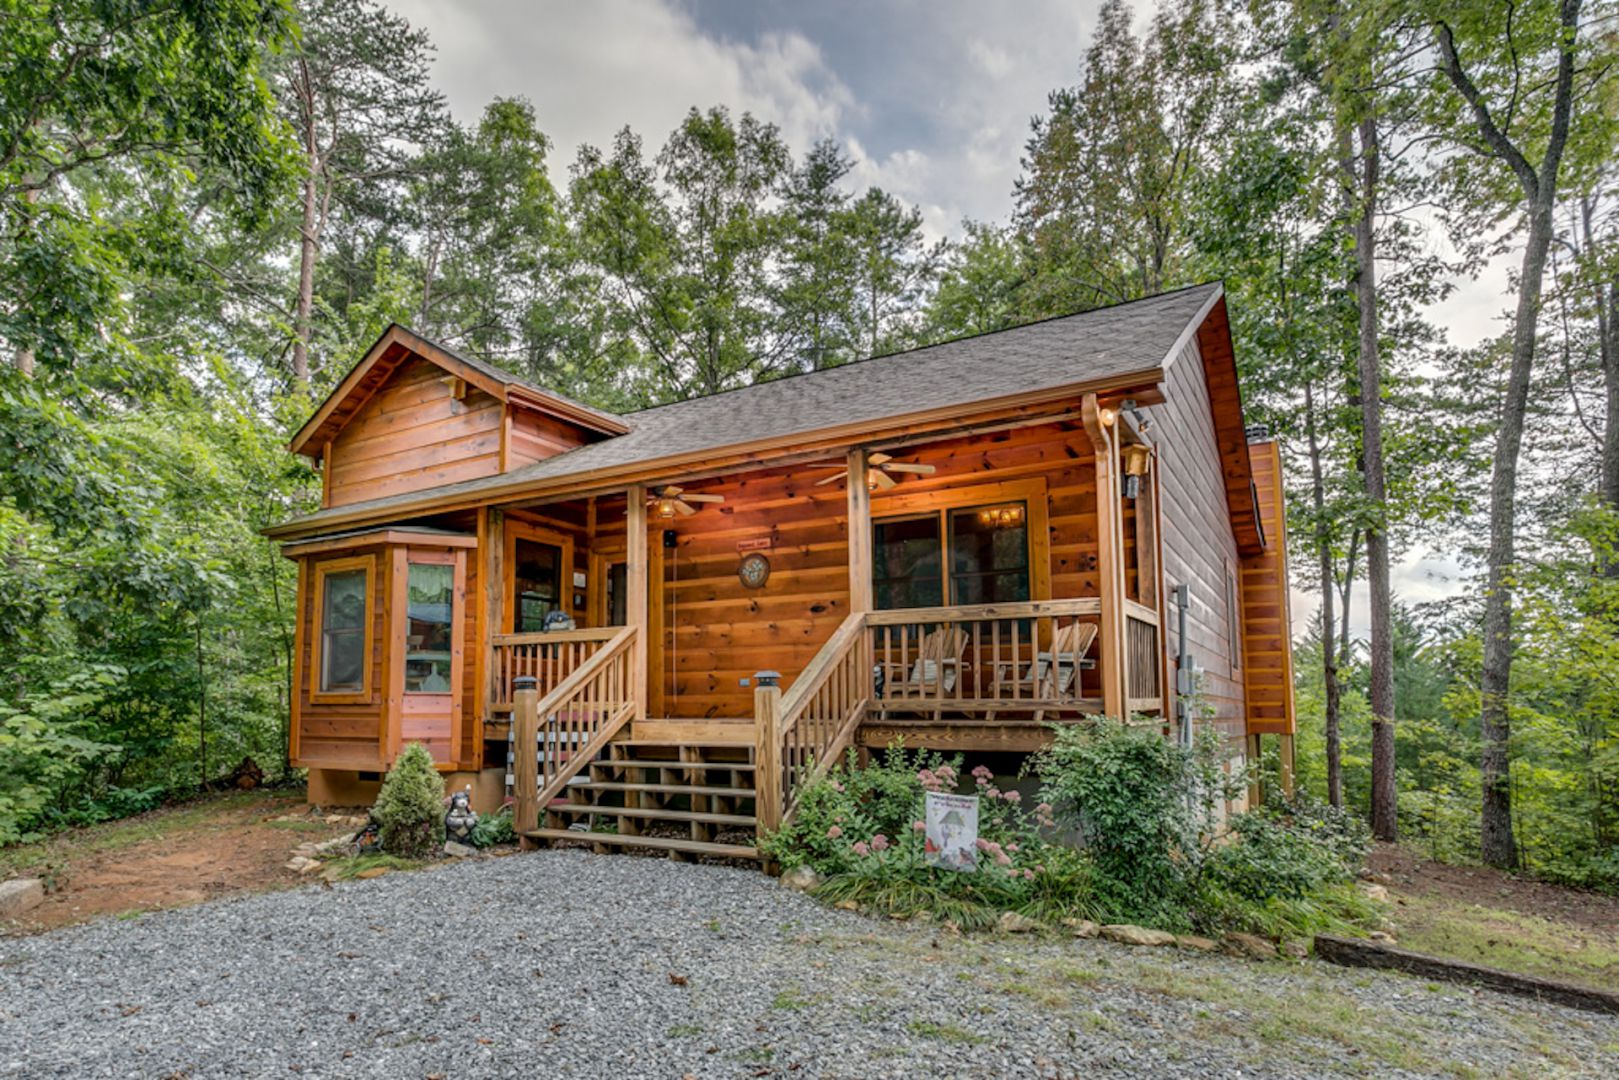 blue hot mountain paint ha creek cabins authentic property ridge on viking lodge cabin mountains log rentals